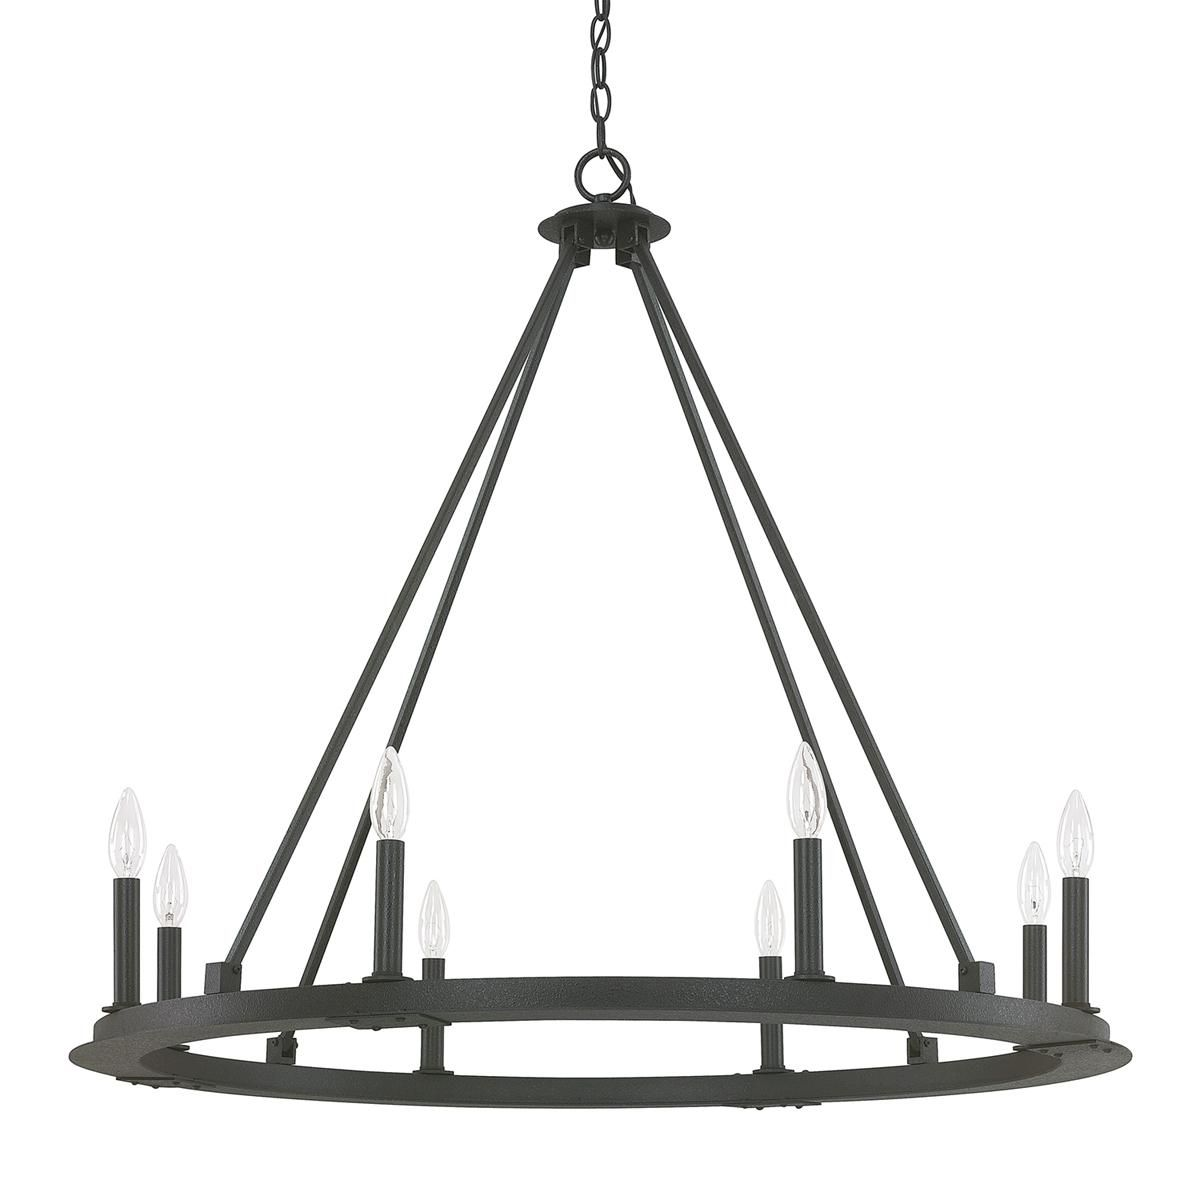 Minimalist Iron Ring Chandelier 8 Light With Images Iron